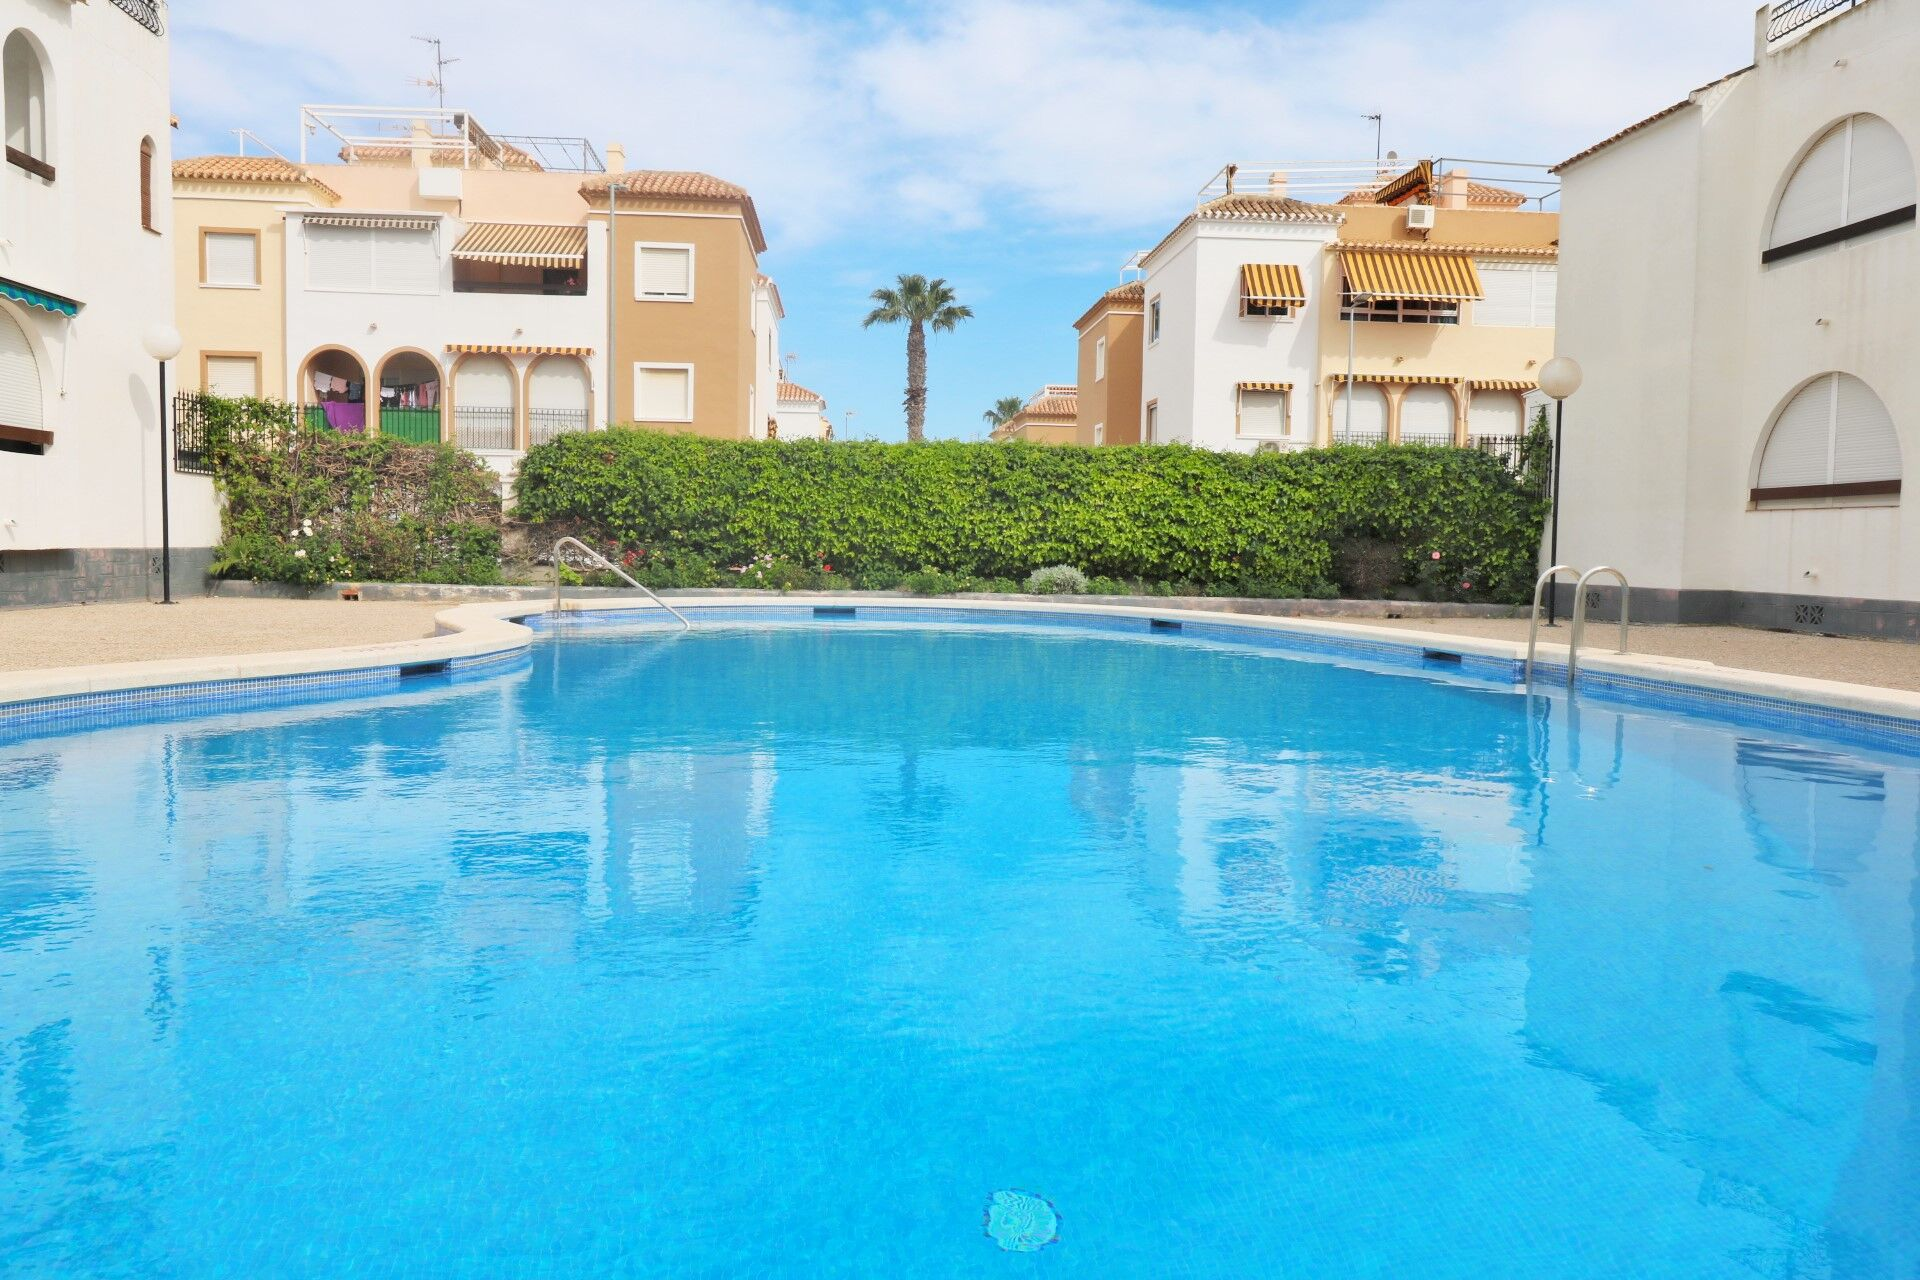 SPAIN COSTA BLANCA – TORREVIEJA, 2 BEDROOM APARTMENT WITH POOL IN PARAISO